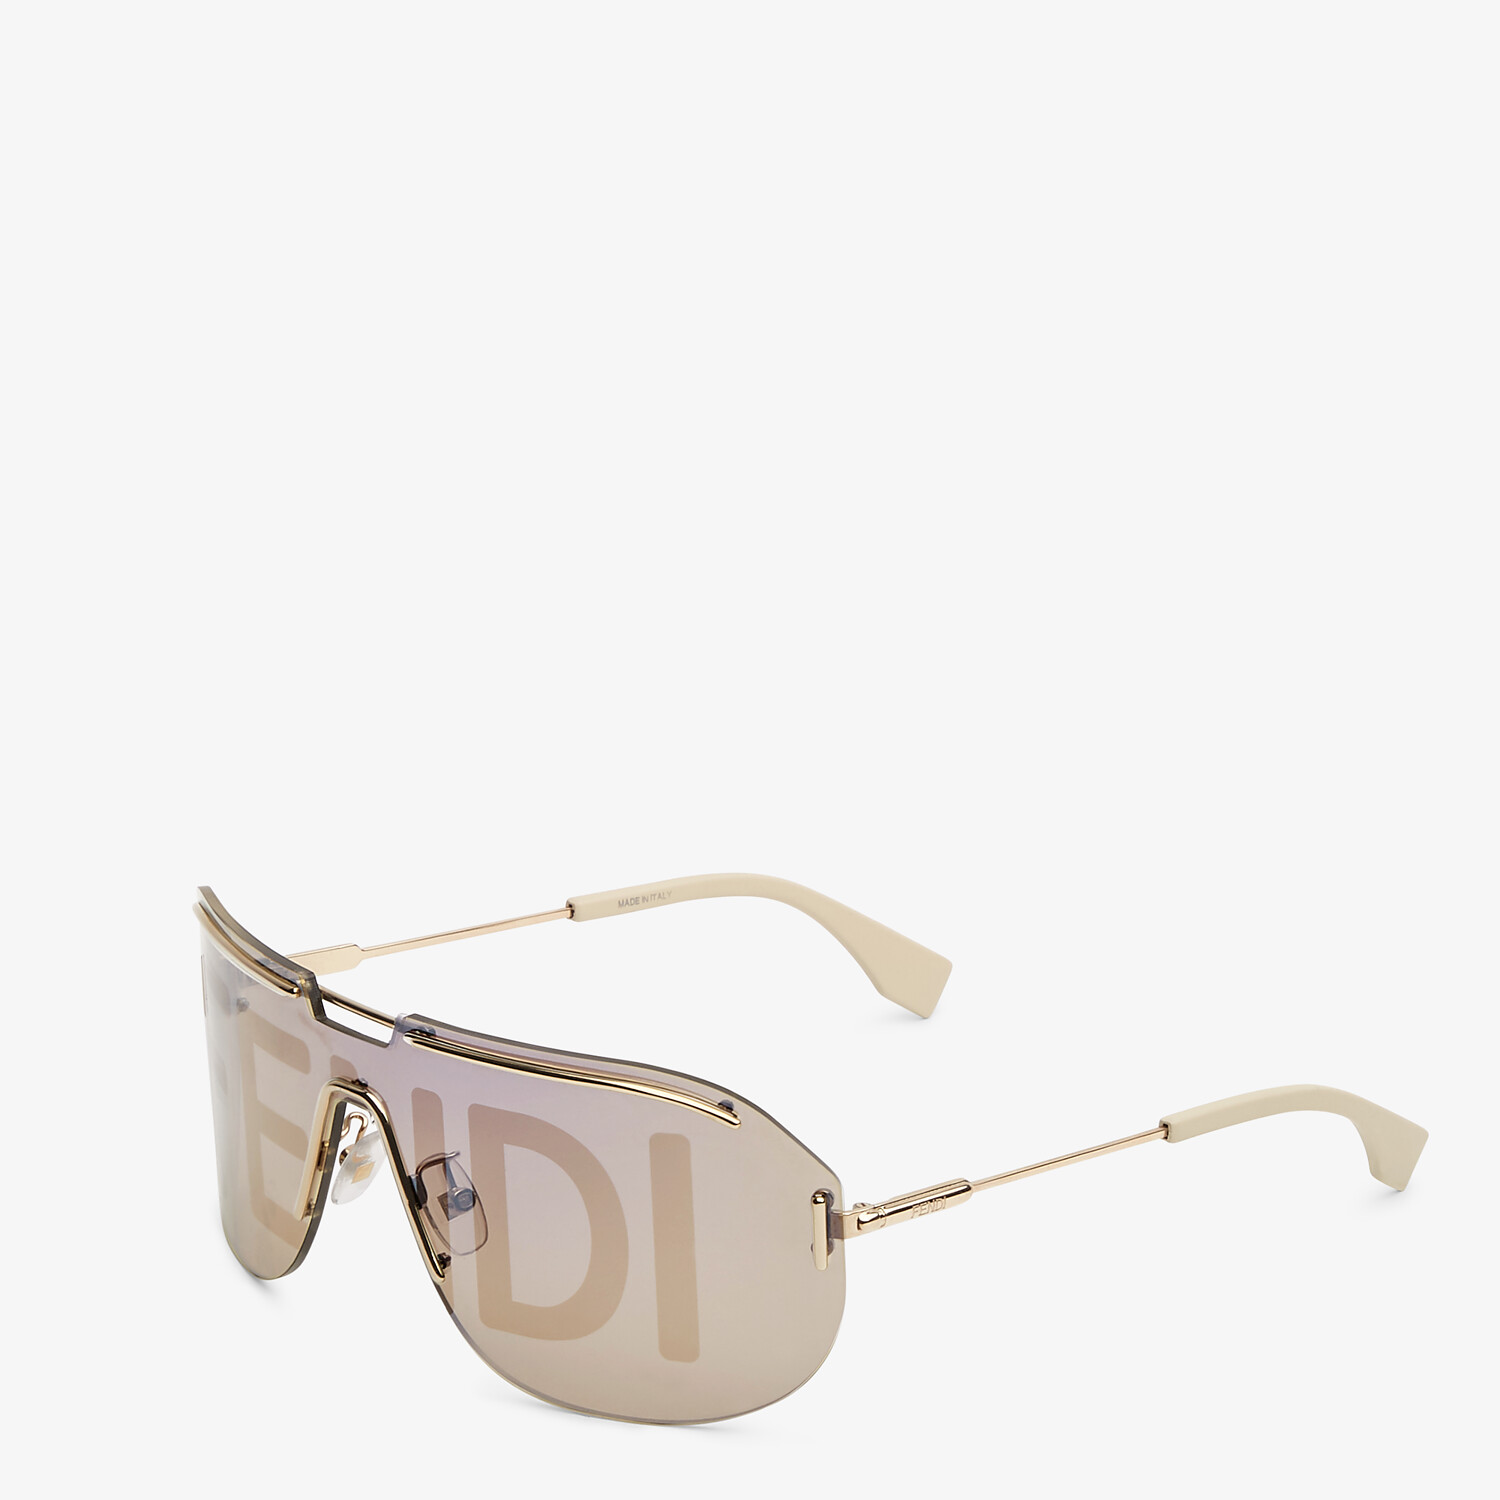 FENDI FENDI CODE - Fashion Show photochromatic sunglasses - view 4 detail